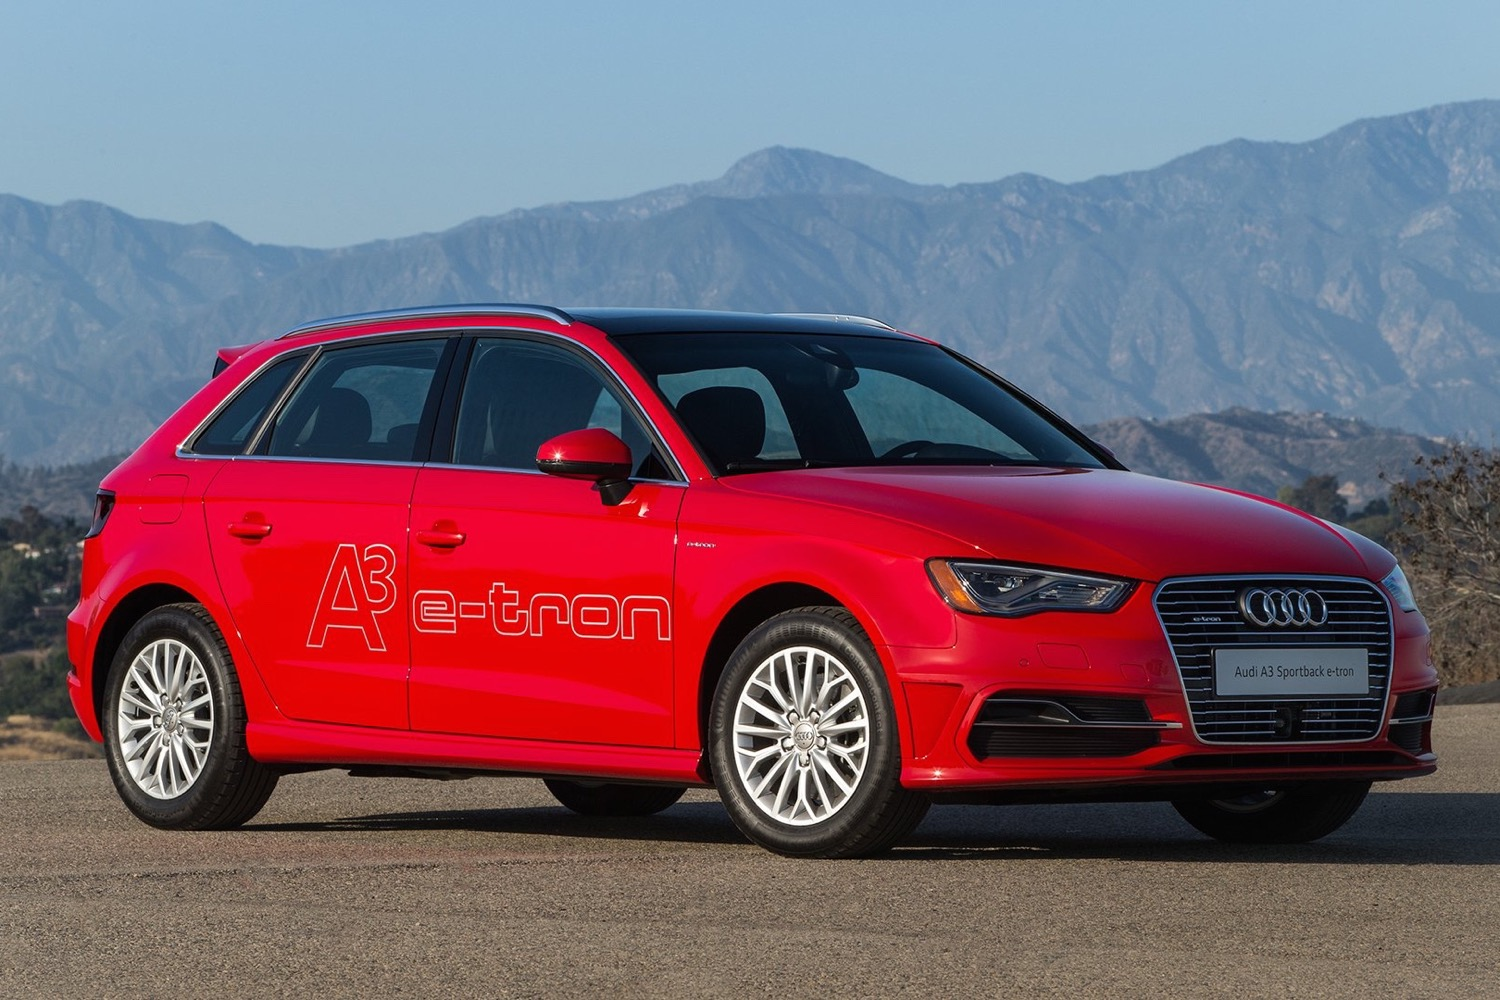 2016 audi a3 e tron plug in hybrid priced from 37 900 rh greencarreports com 2013 Audi A3 TDI 2012 Audi A3 Interior